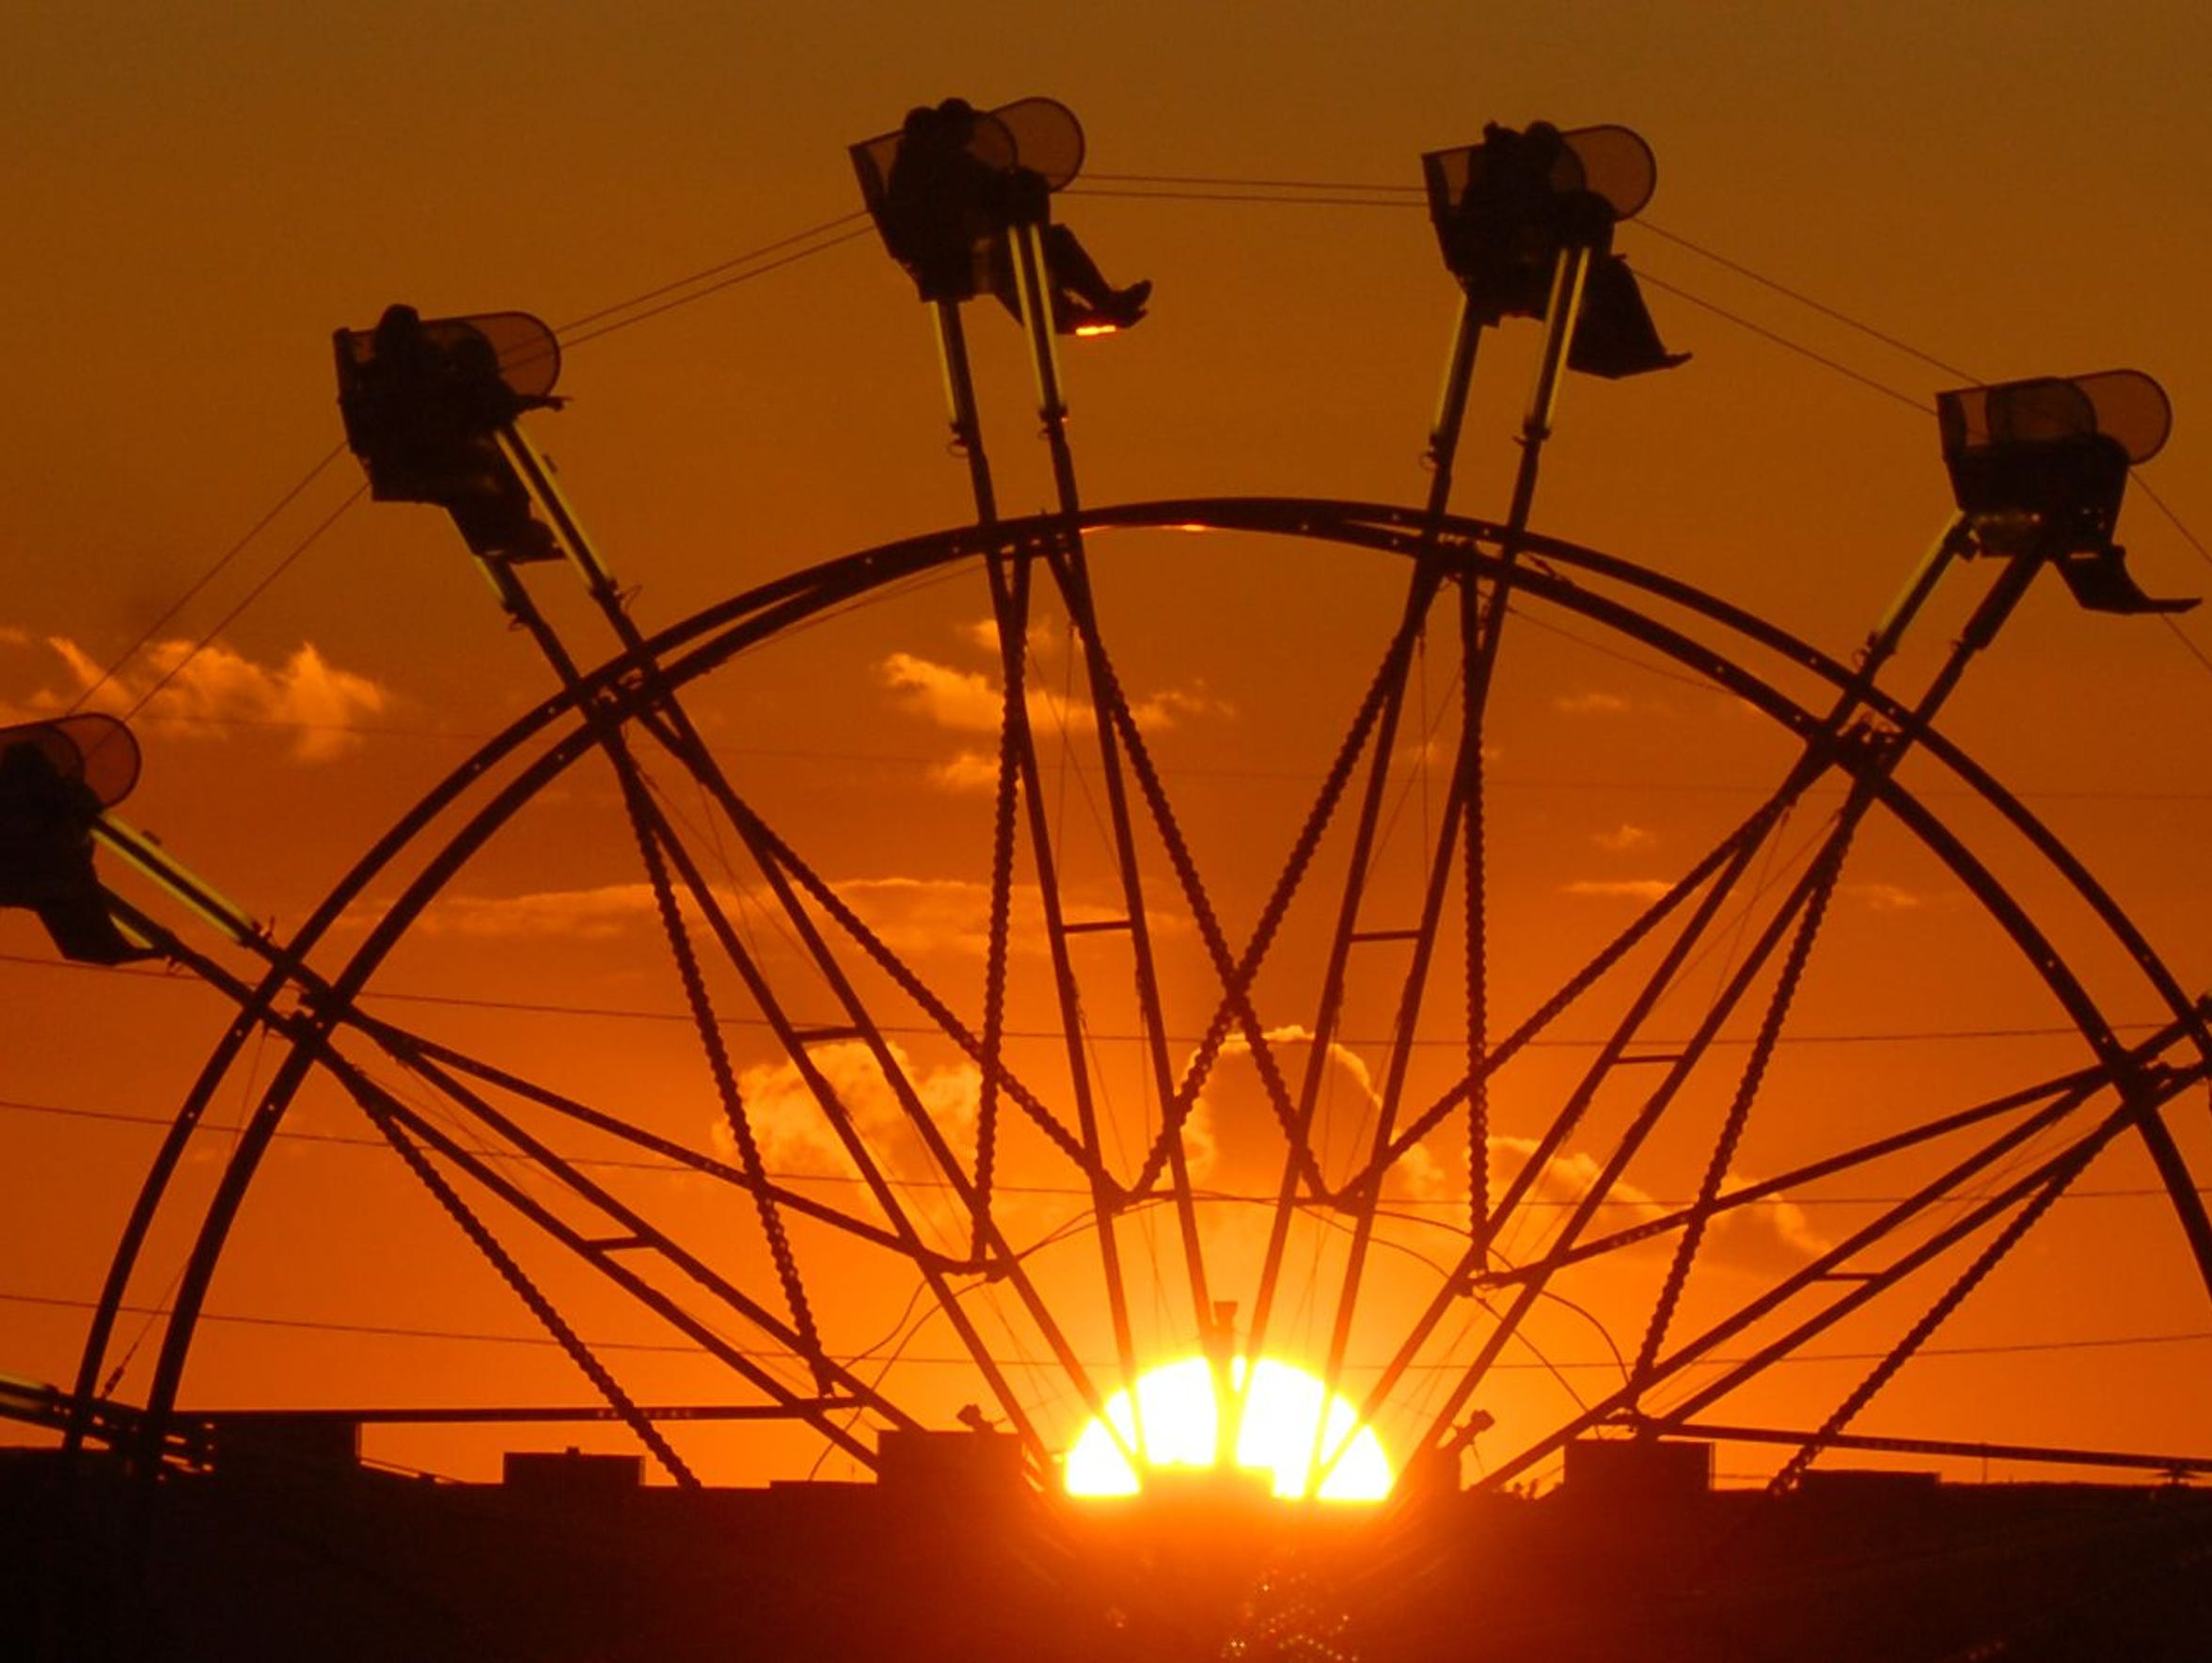 The Manitowoc County Fair is scheduled for Aug. 23-28.